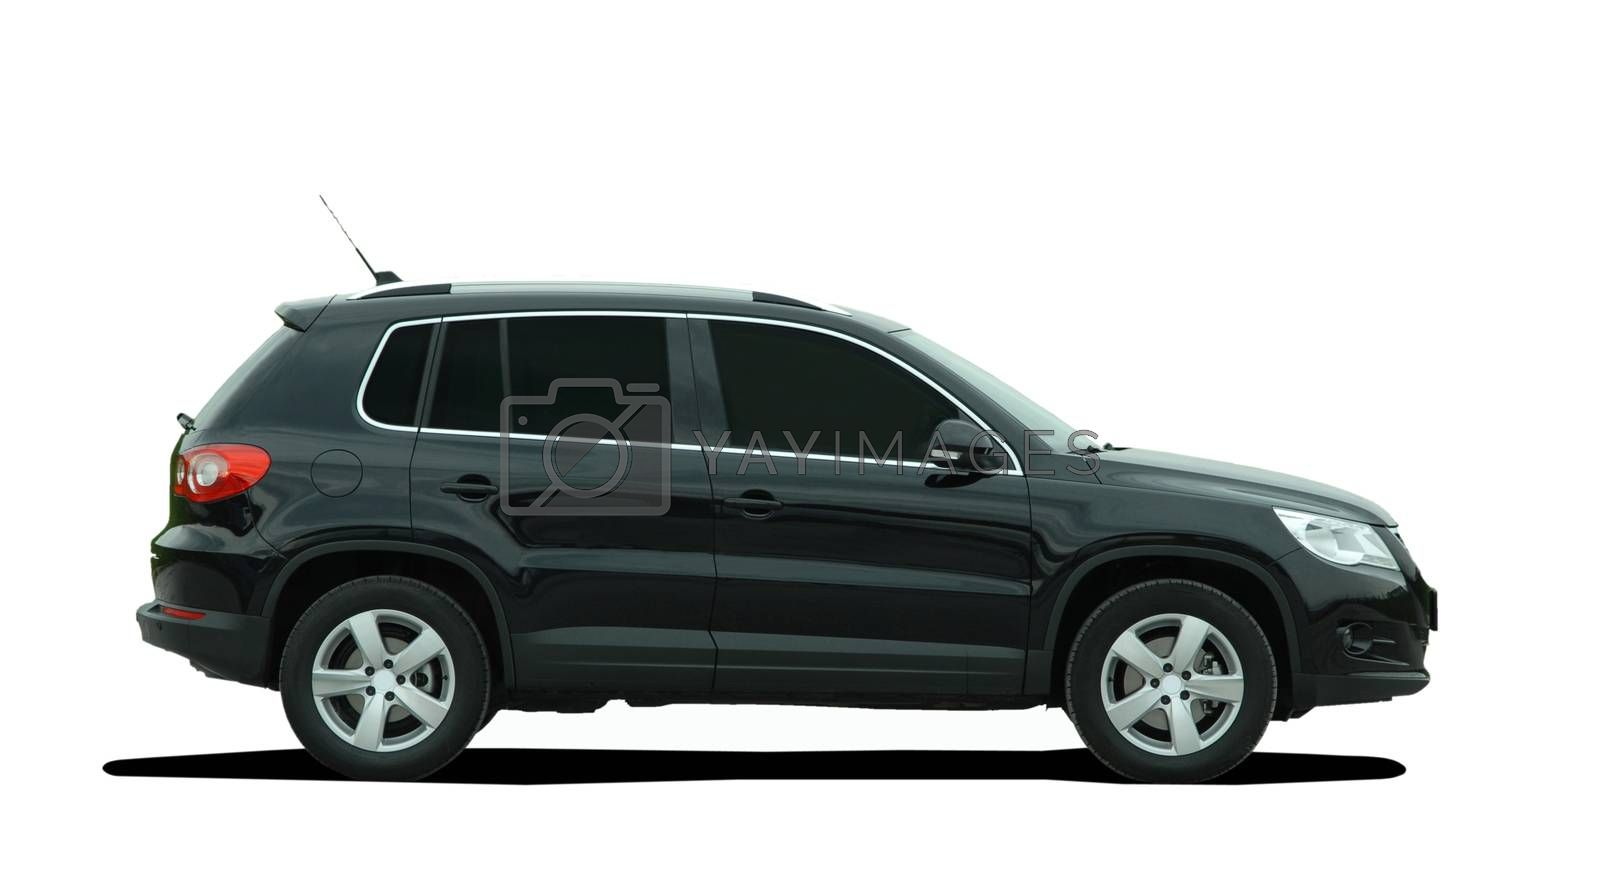 SUV on a white background